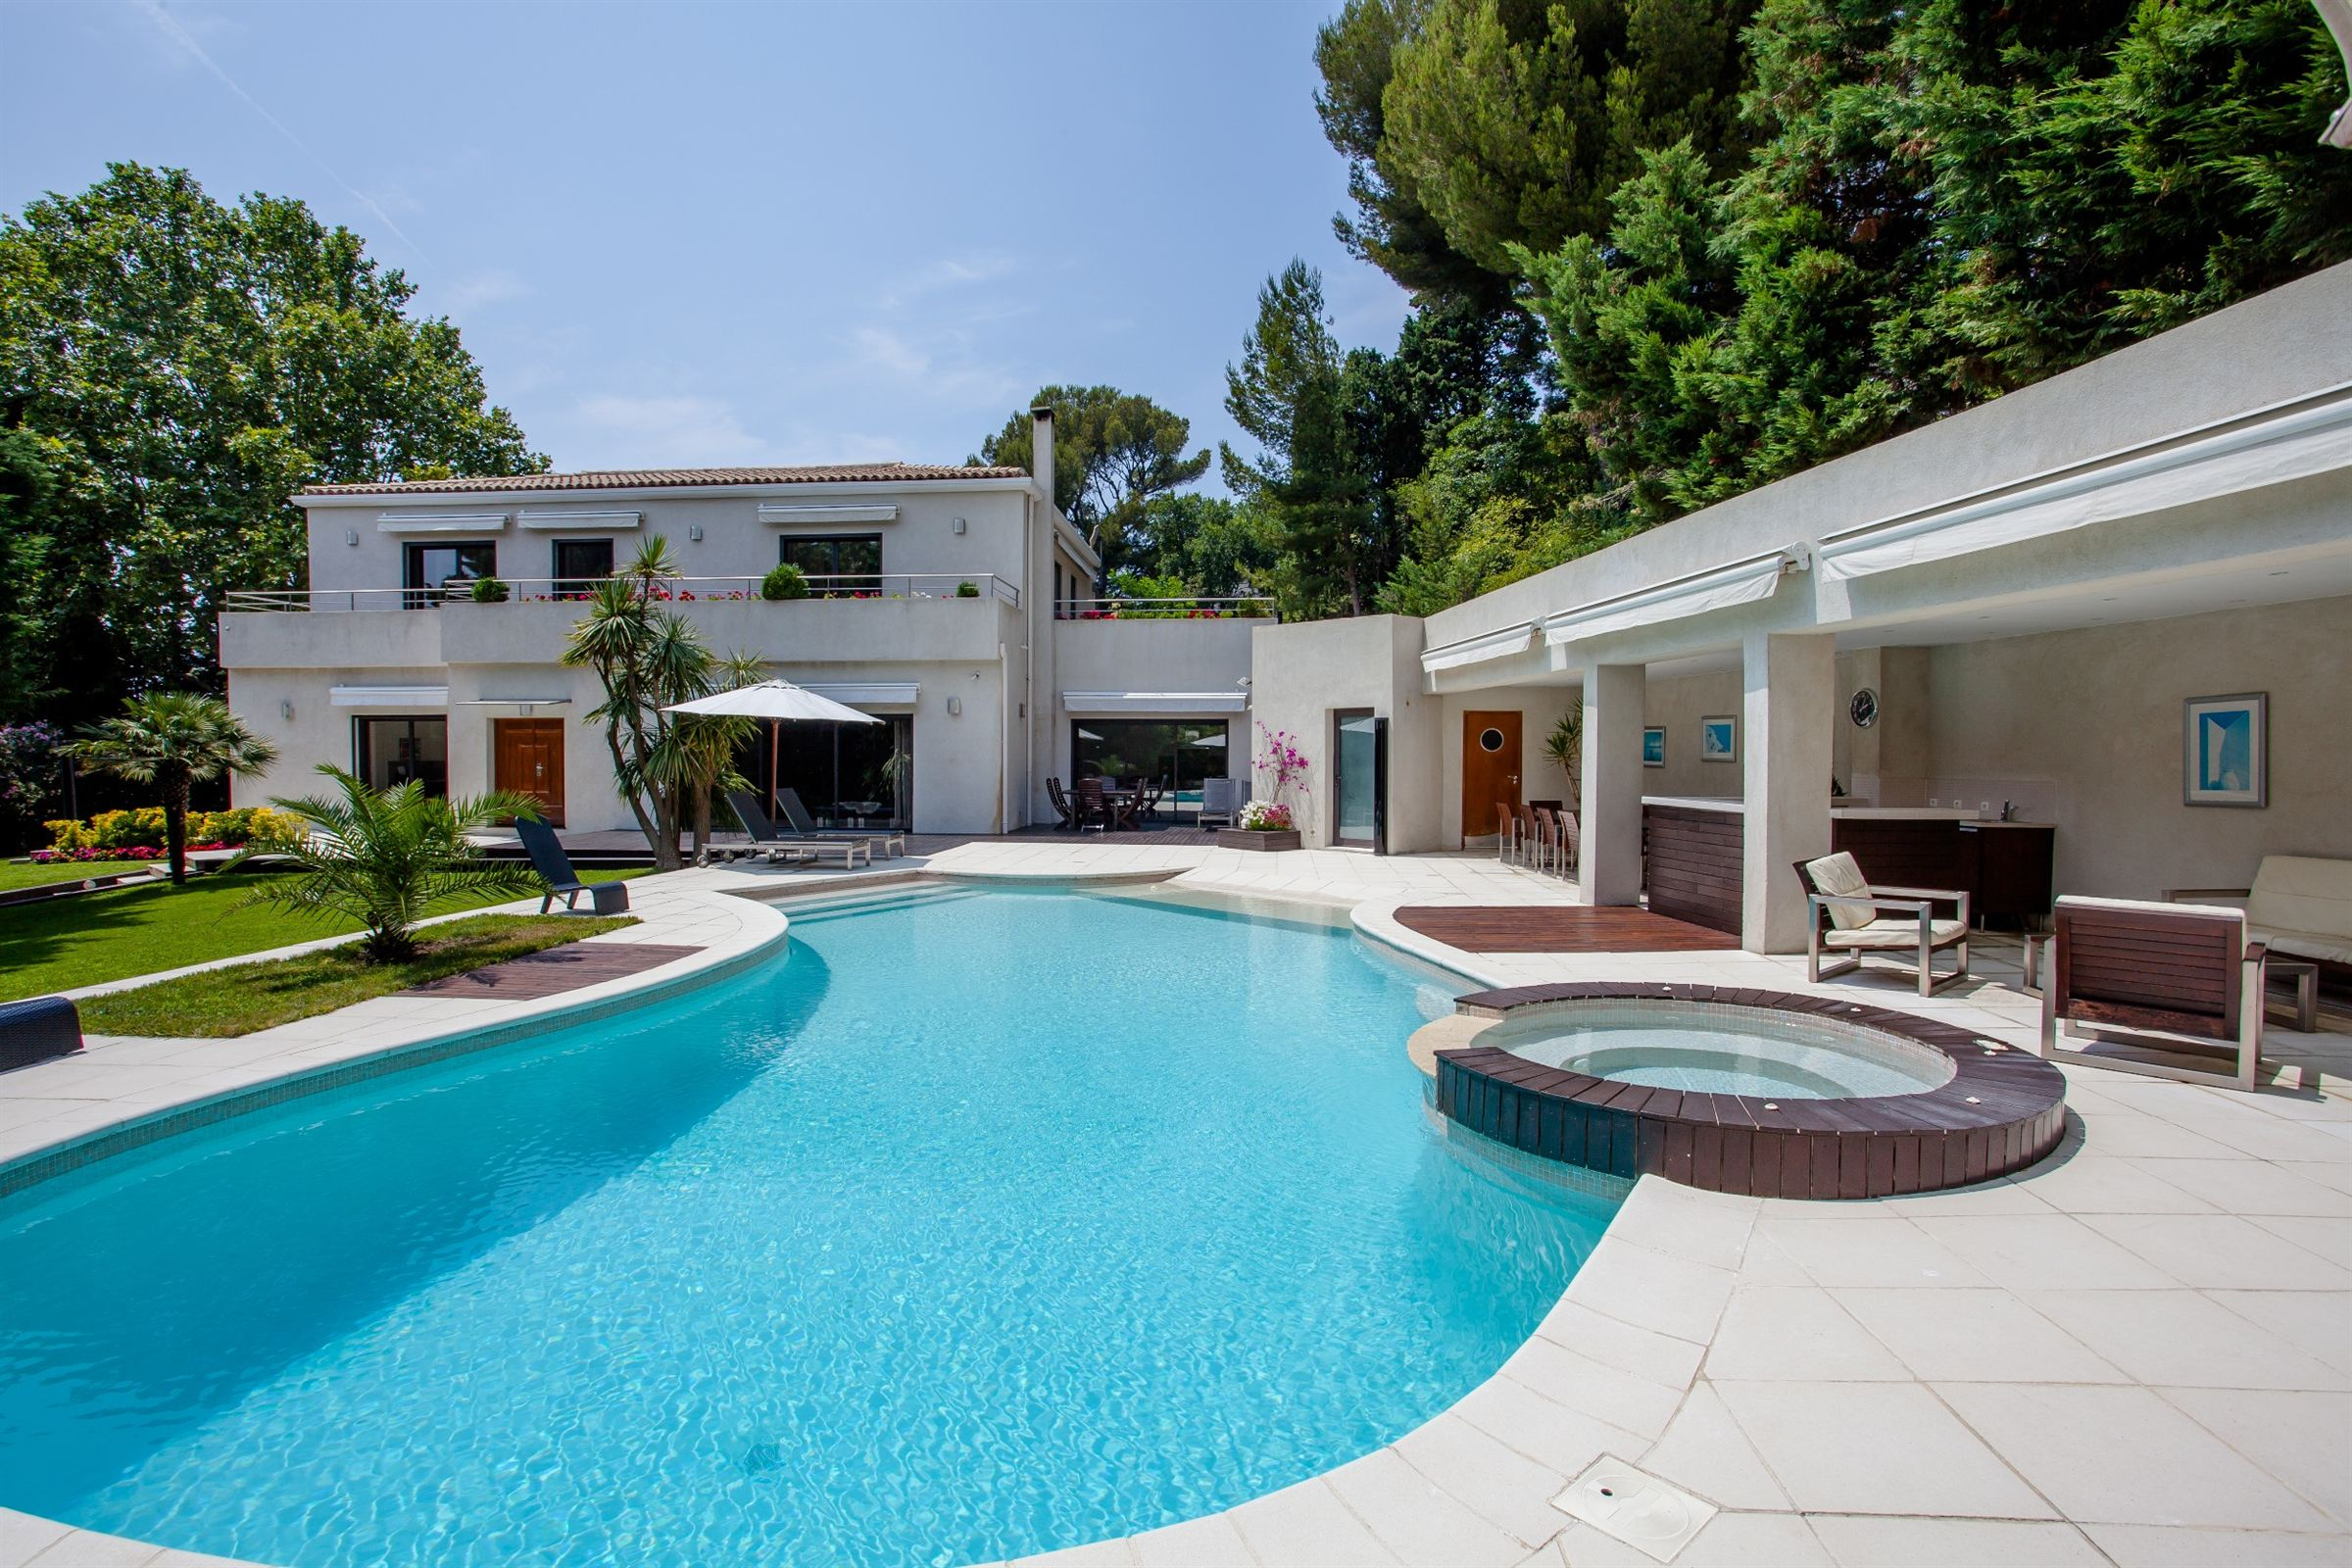 sales property at CARRE D'OR - VILLA CONTEMPORAINE 320M²